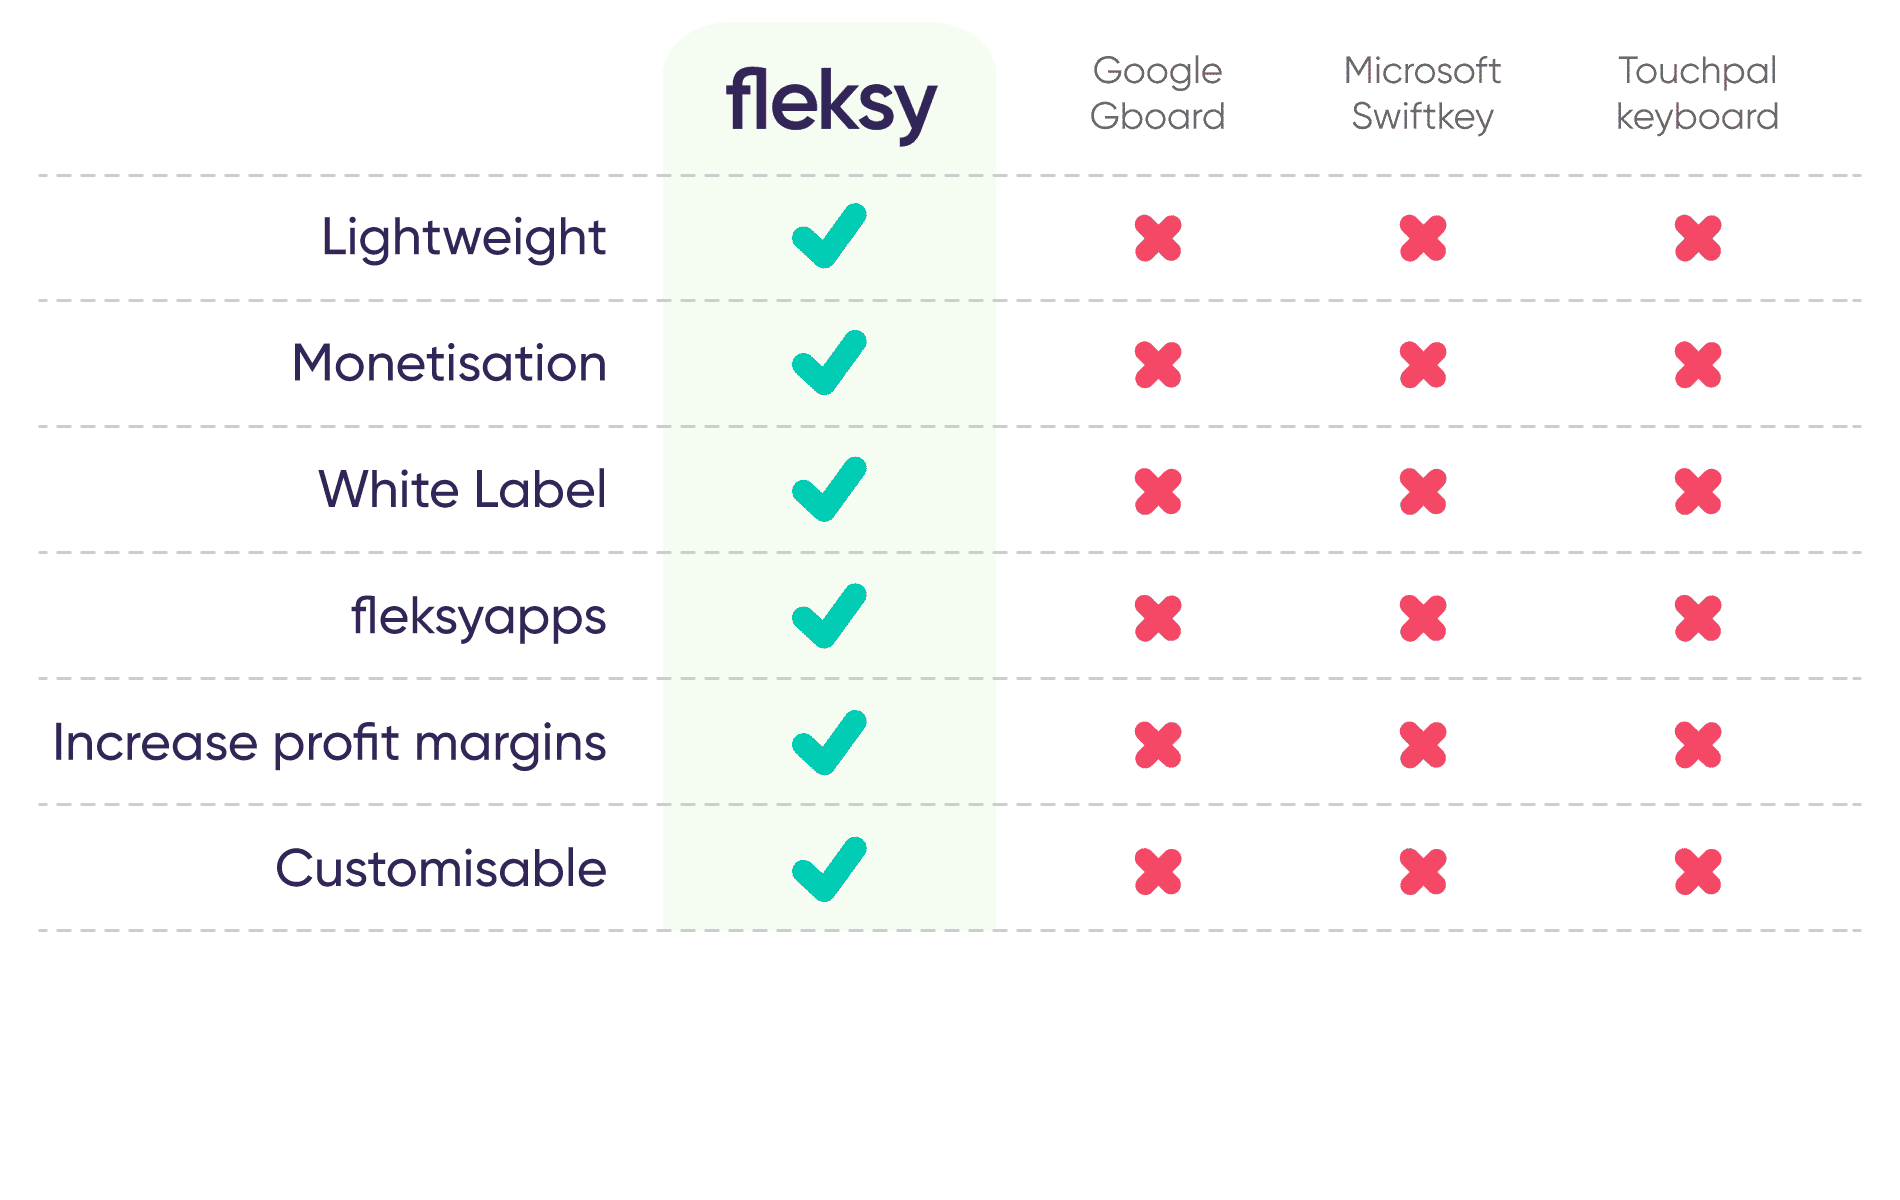 fleksy-OEM-monetization-comparision-chart-fleksy-against-competitor-keyboards-6